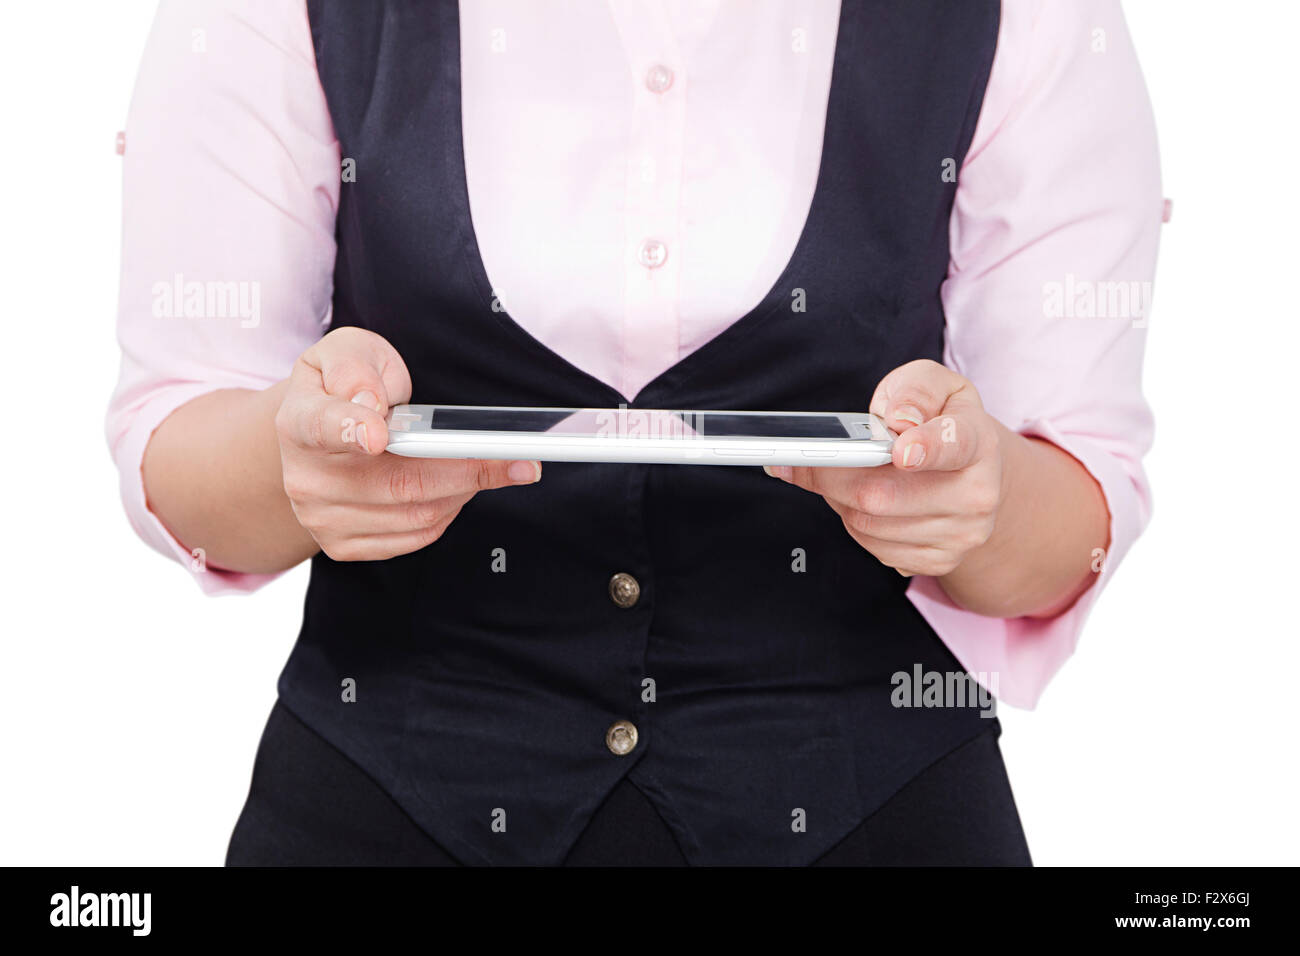 1 Business woman Digital Tablet Technology - Stock Image